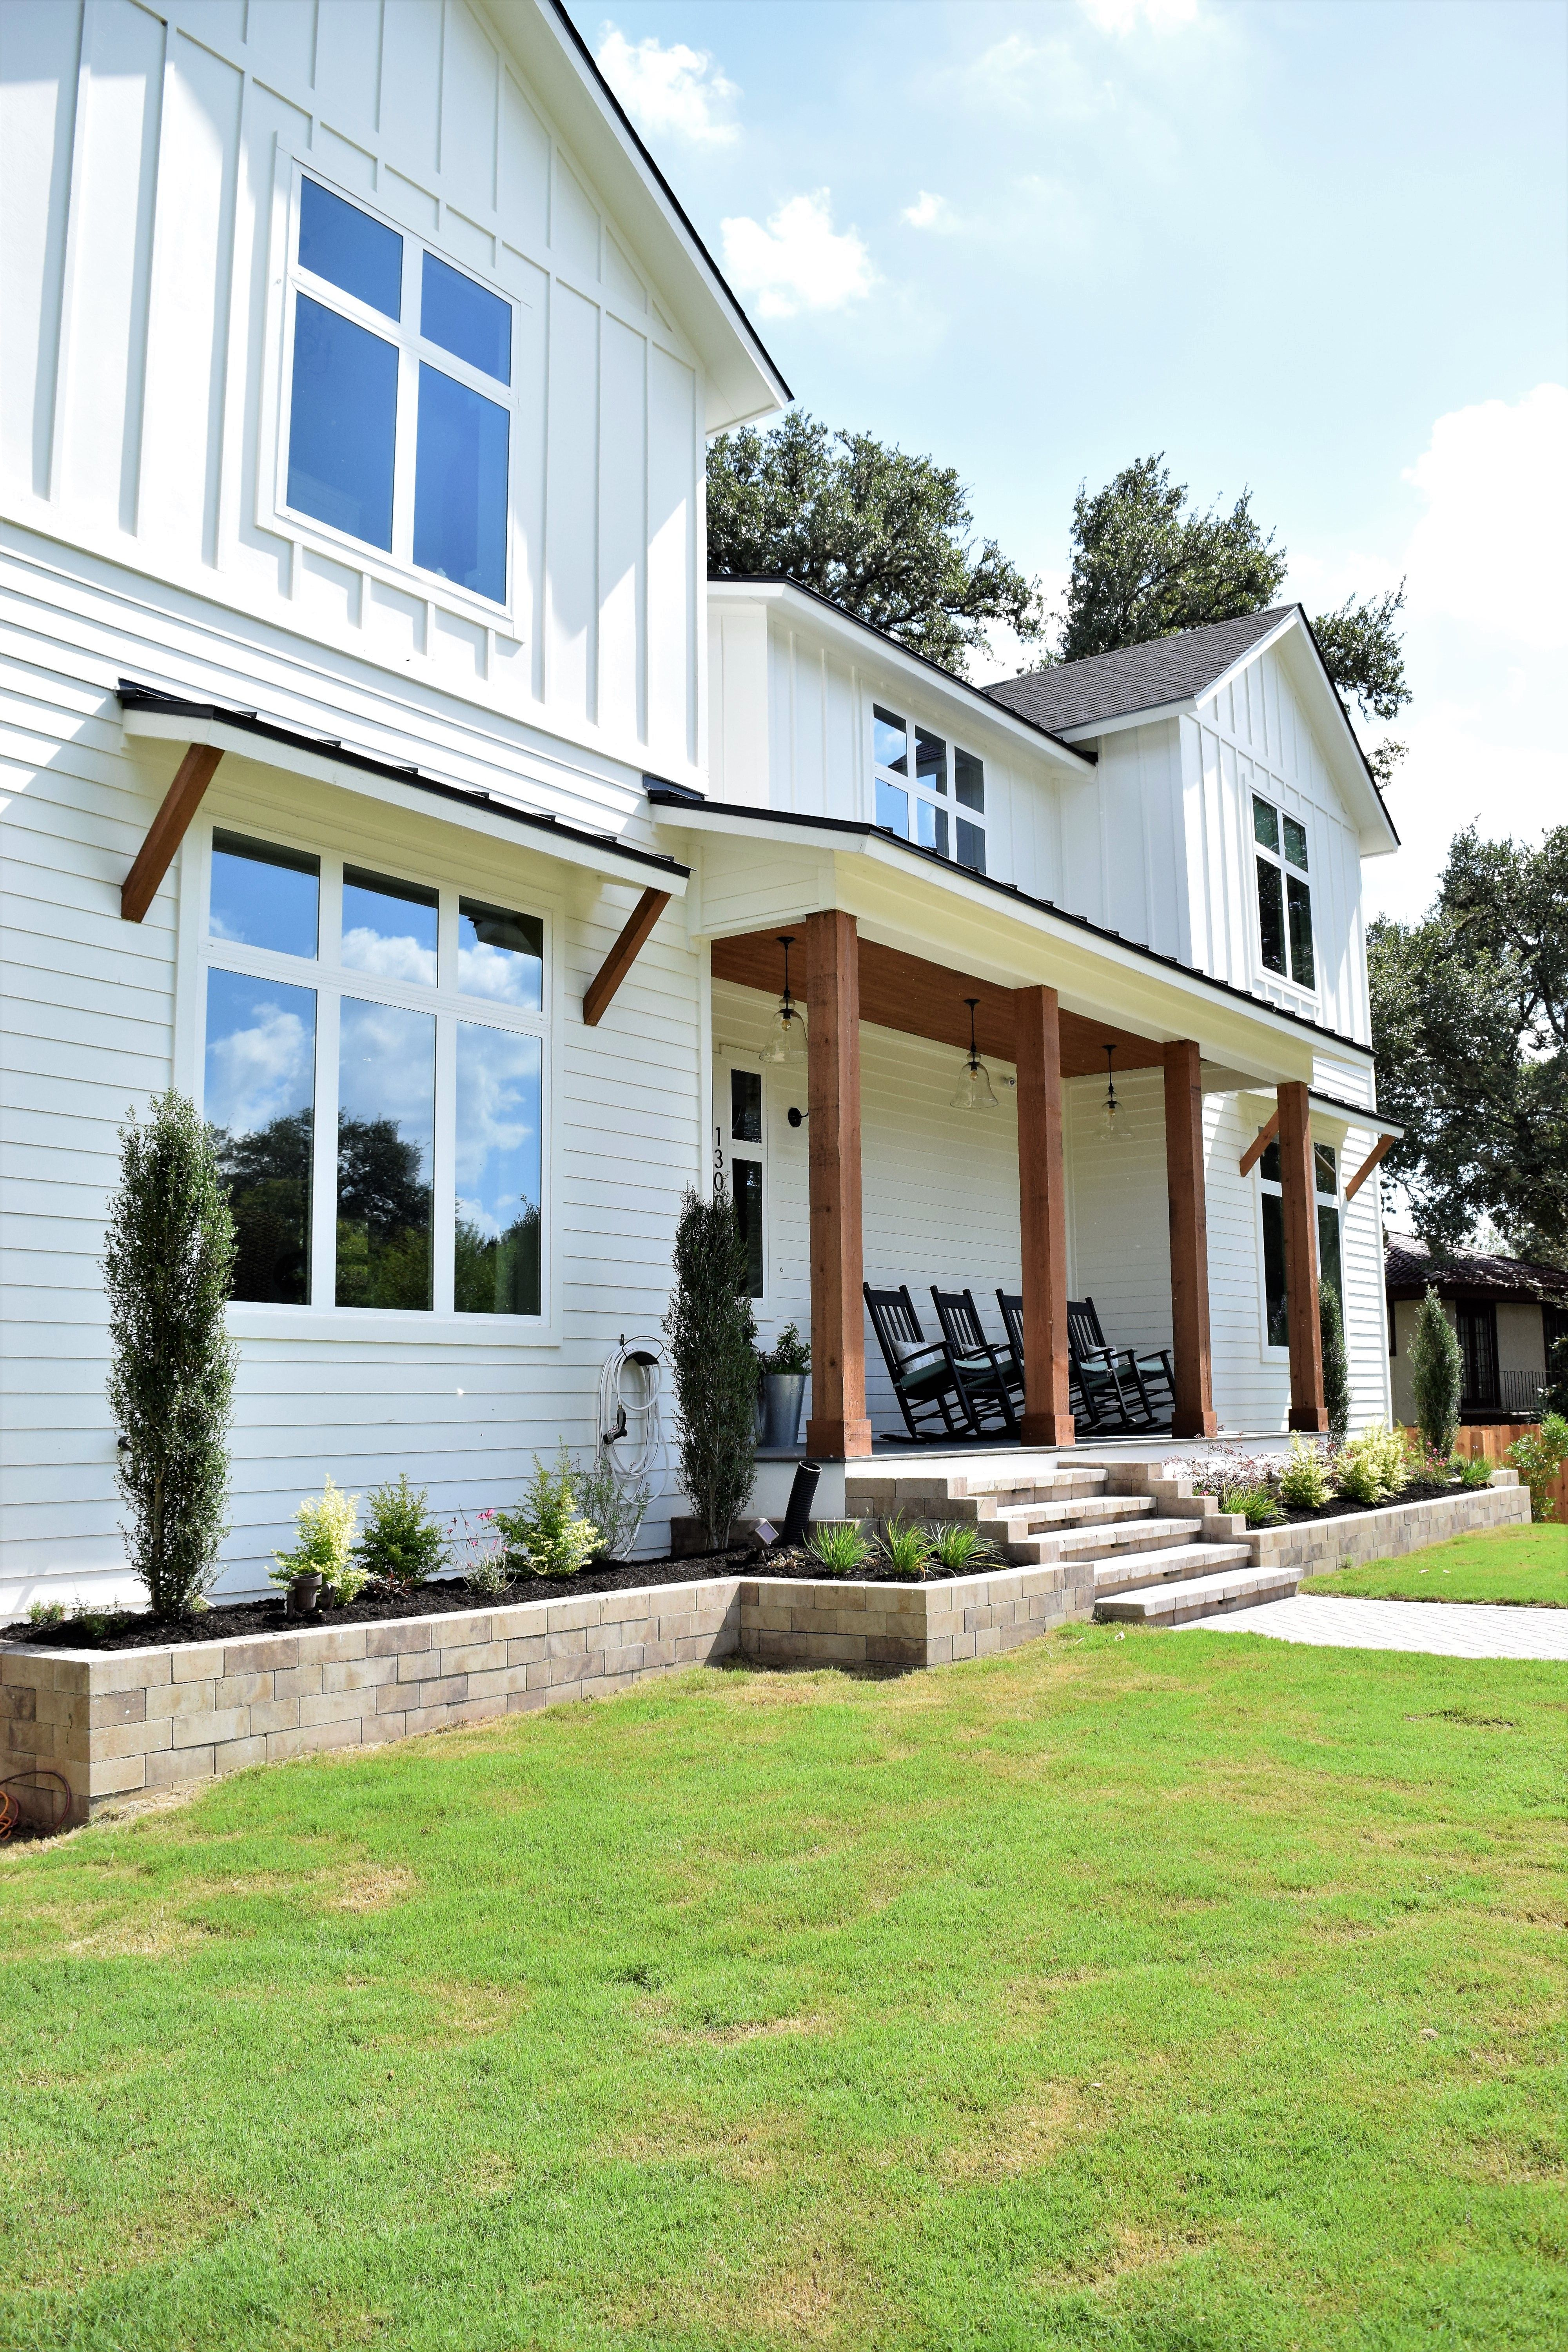 Farmhouse Exterior Colors With Metal Roof Benjamin Moore Simply White Modern Farmhouse Exterior All